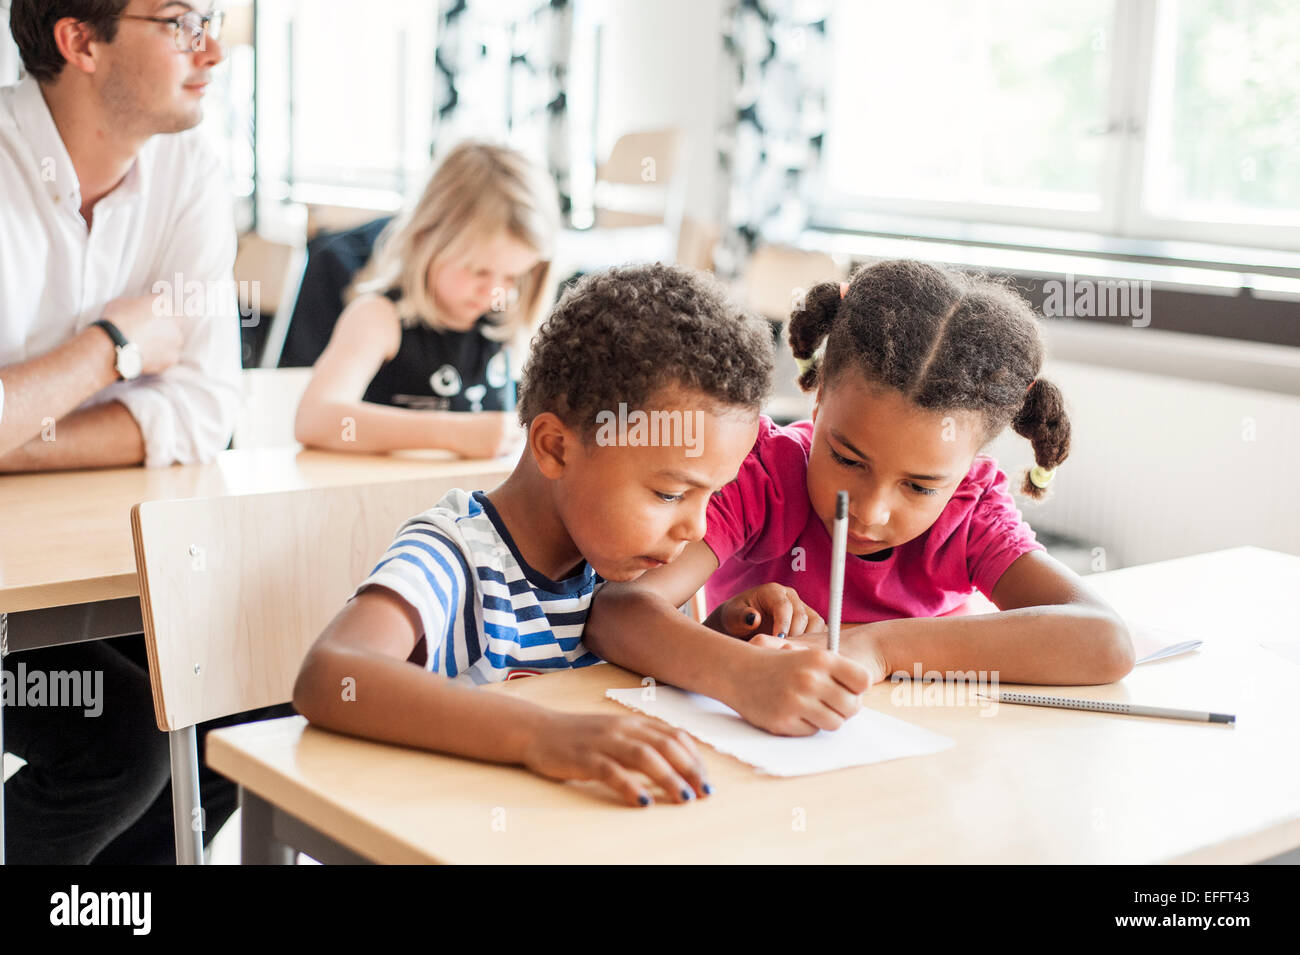 Children studying in classroom - Stock Image